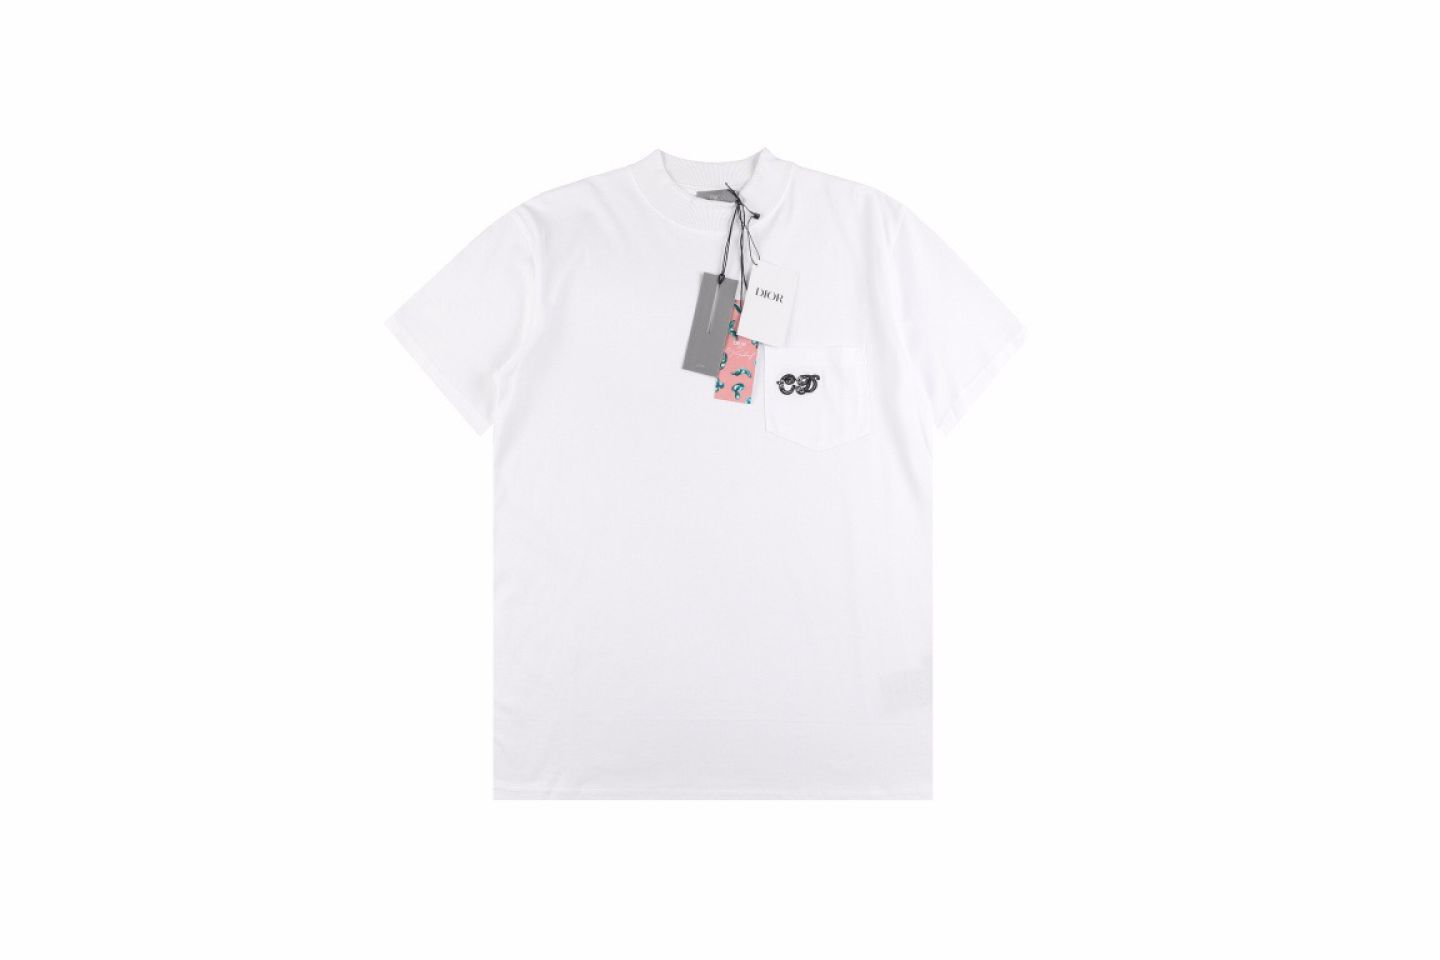 """Shirt Dior 21ss Elf series pocket embroidery tee """"White"""" 1 1"""